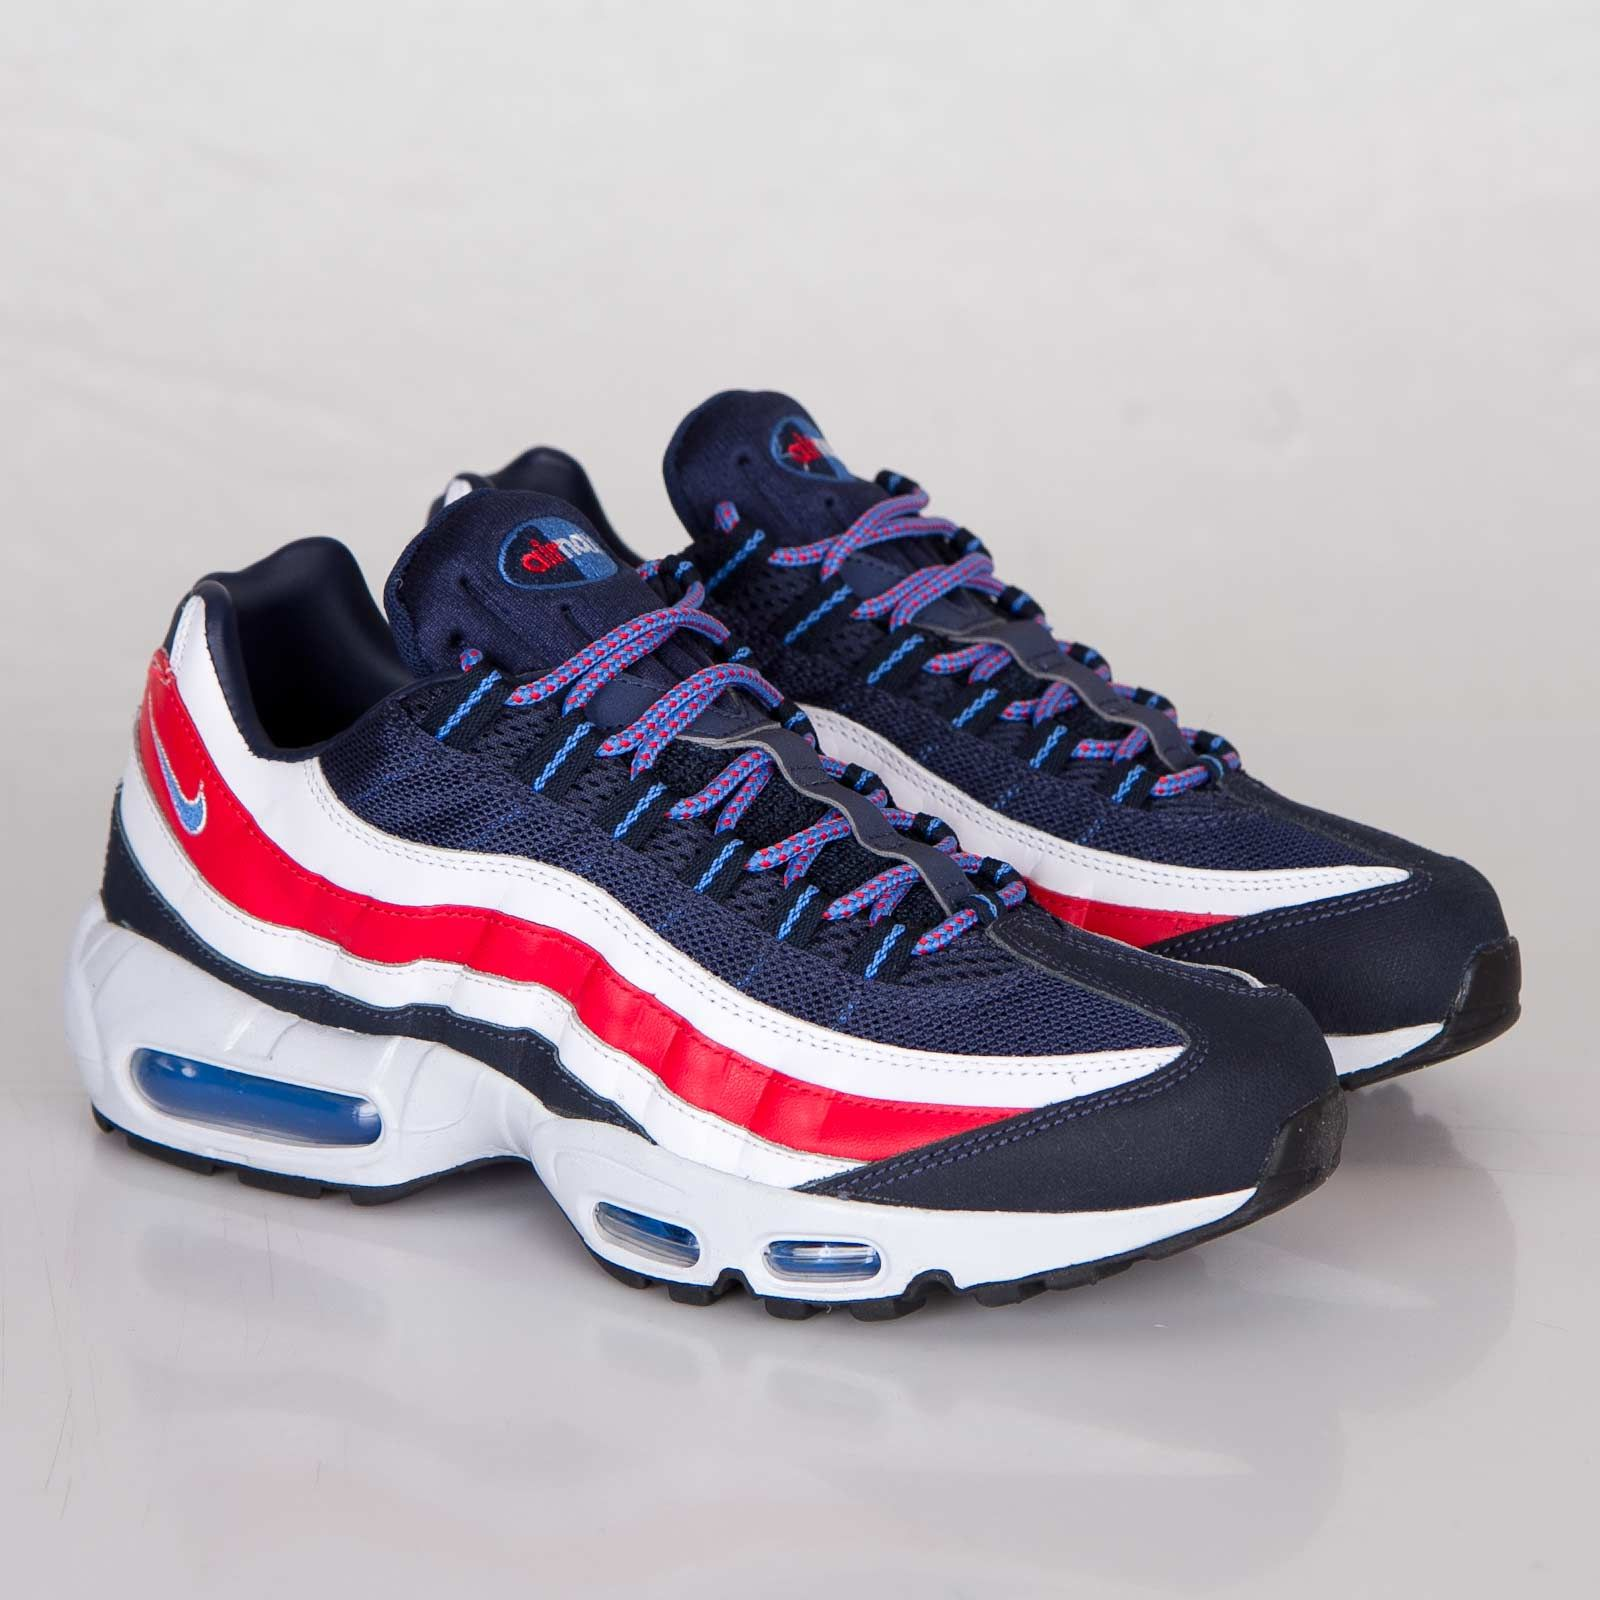 Air Max 95 Bleu Blanc Rouge